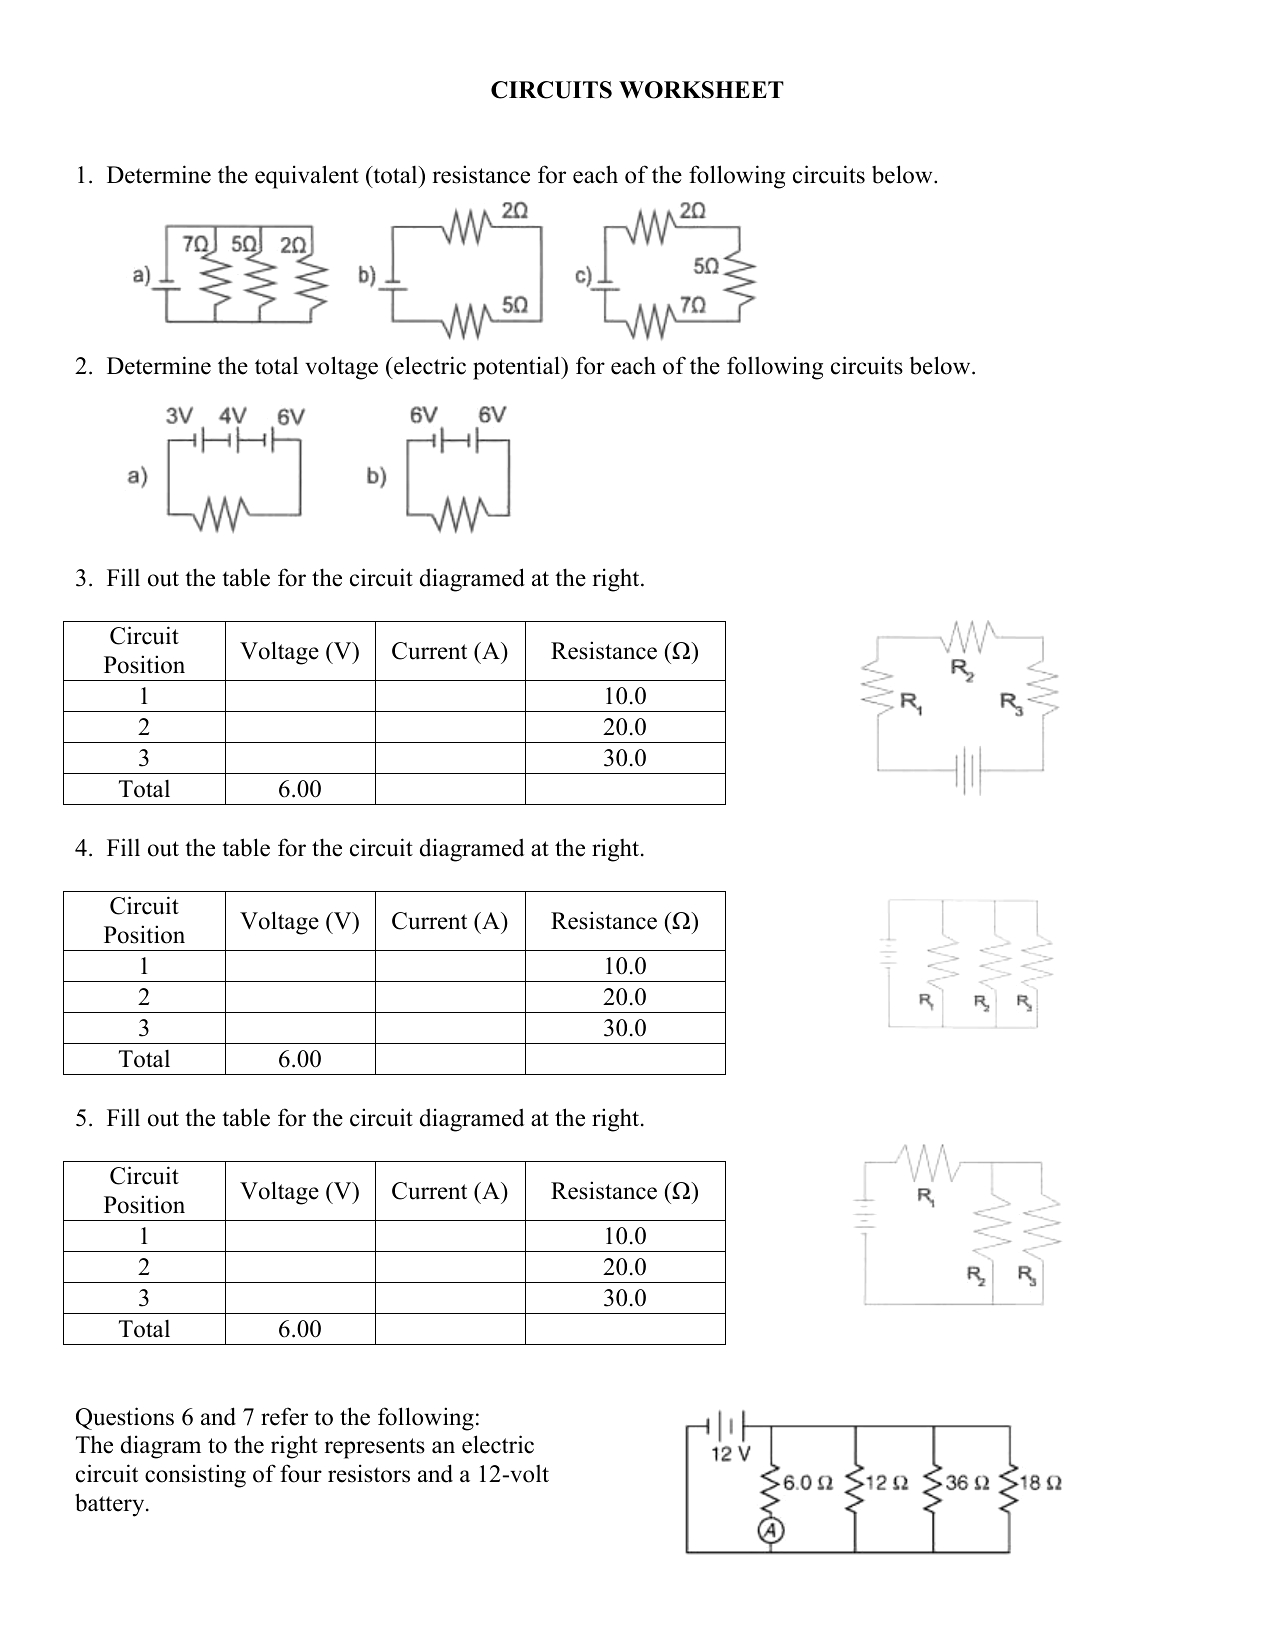 Circuits Worksheet Answer Key — excelguider.com